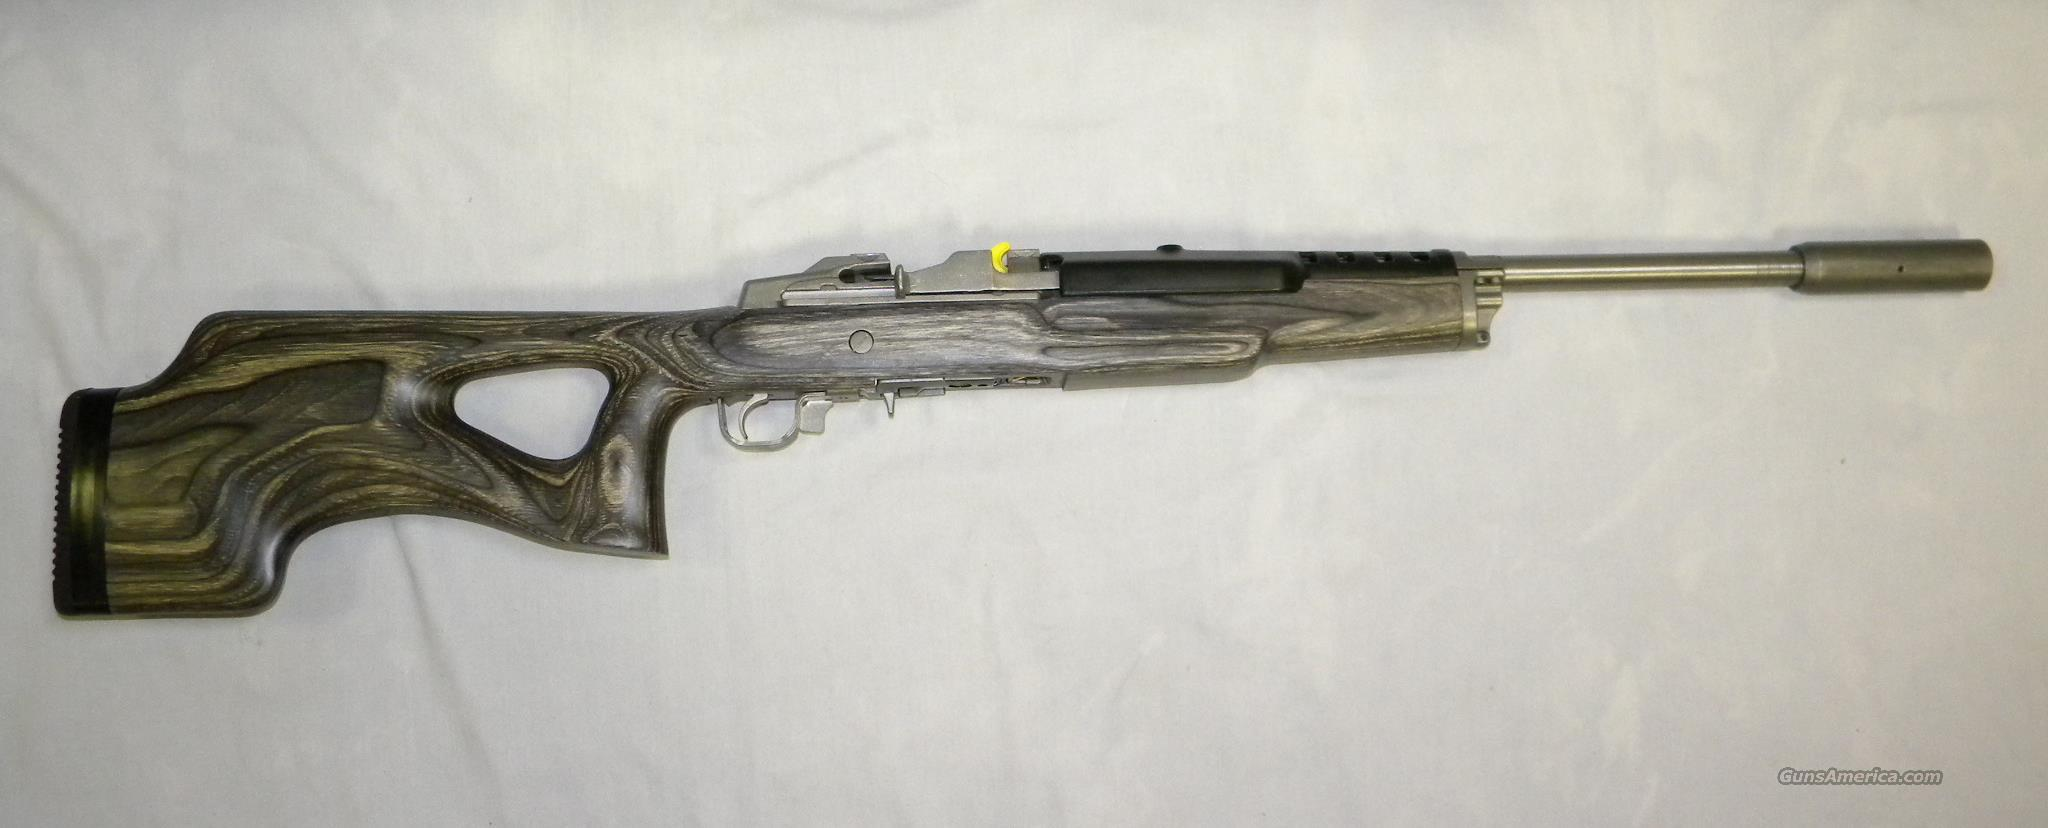 Ruger Target Ranch Rifle 223 For Sale